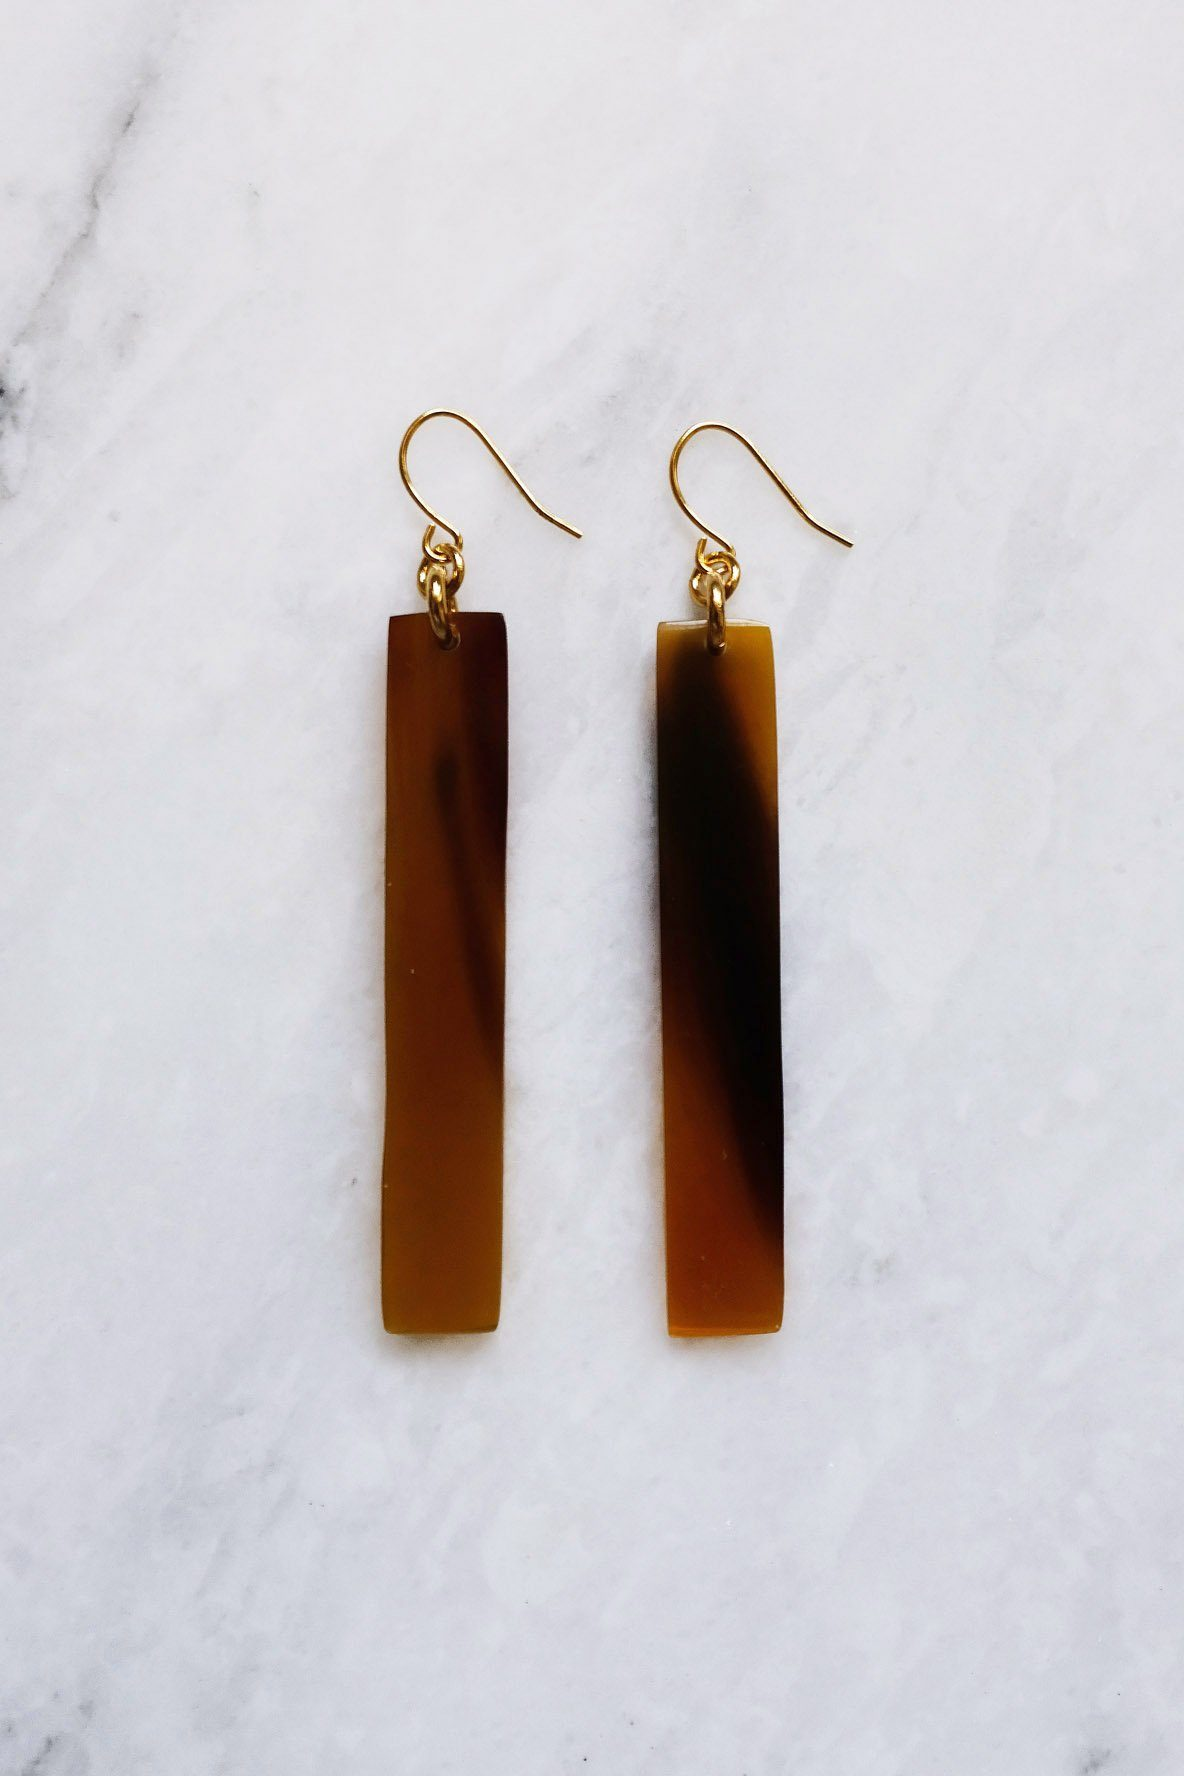 Tinh 16K Gold-Plated Brass Buffalo Horn Minimalist Bar Earrings - Zip & Mos